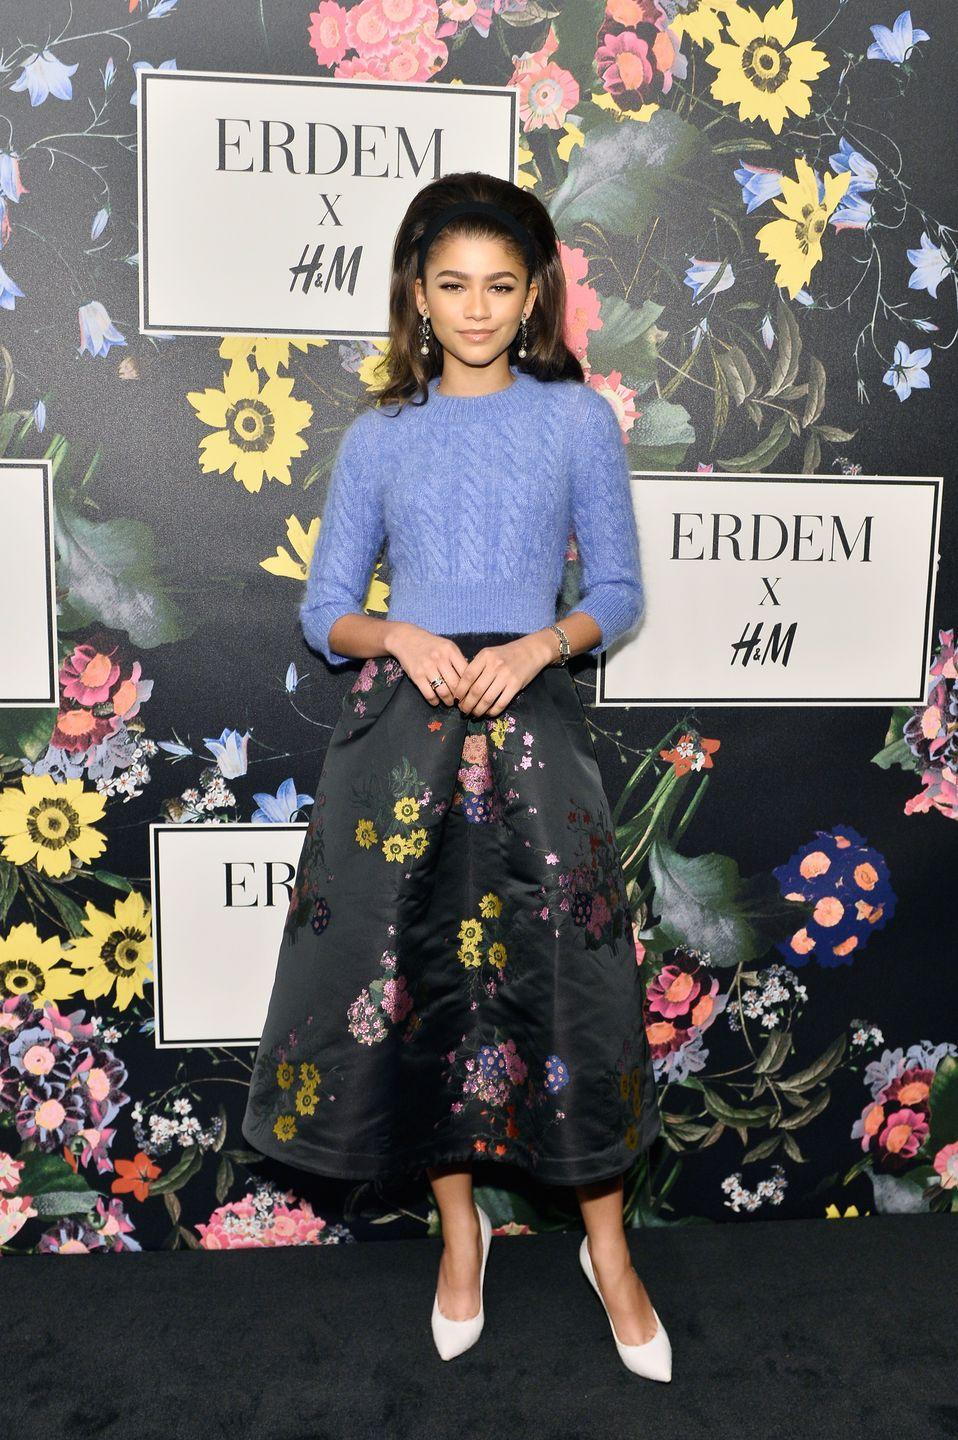 <p>Zendaya wore Erdem x H&M to attend the launch of the designer's collaboration.</p>